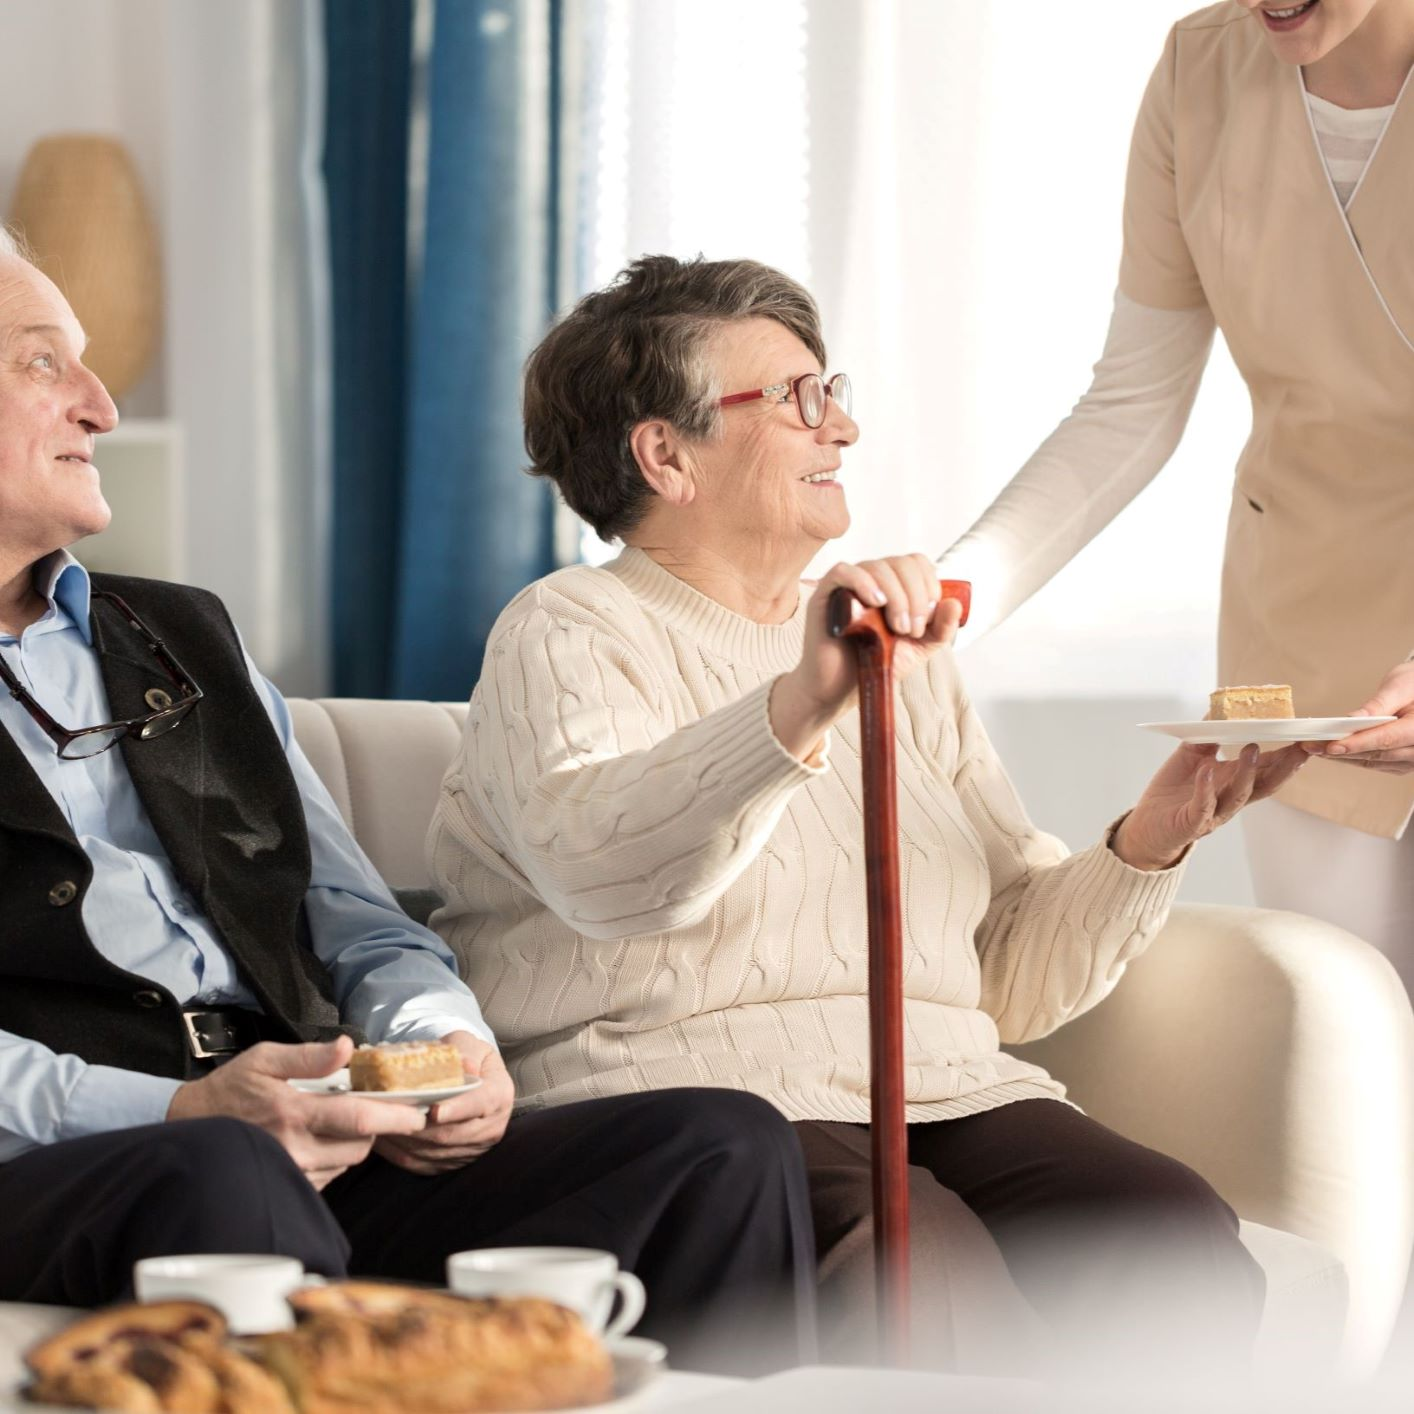 Using Walker or Cane After Joint Replacement